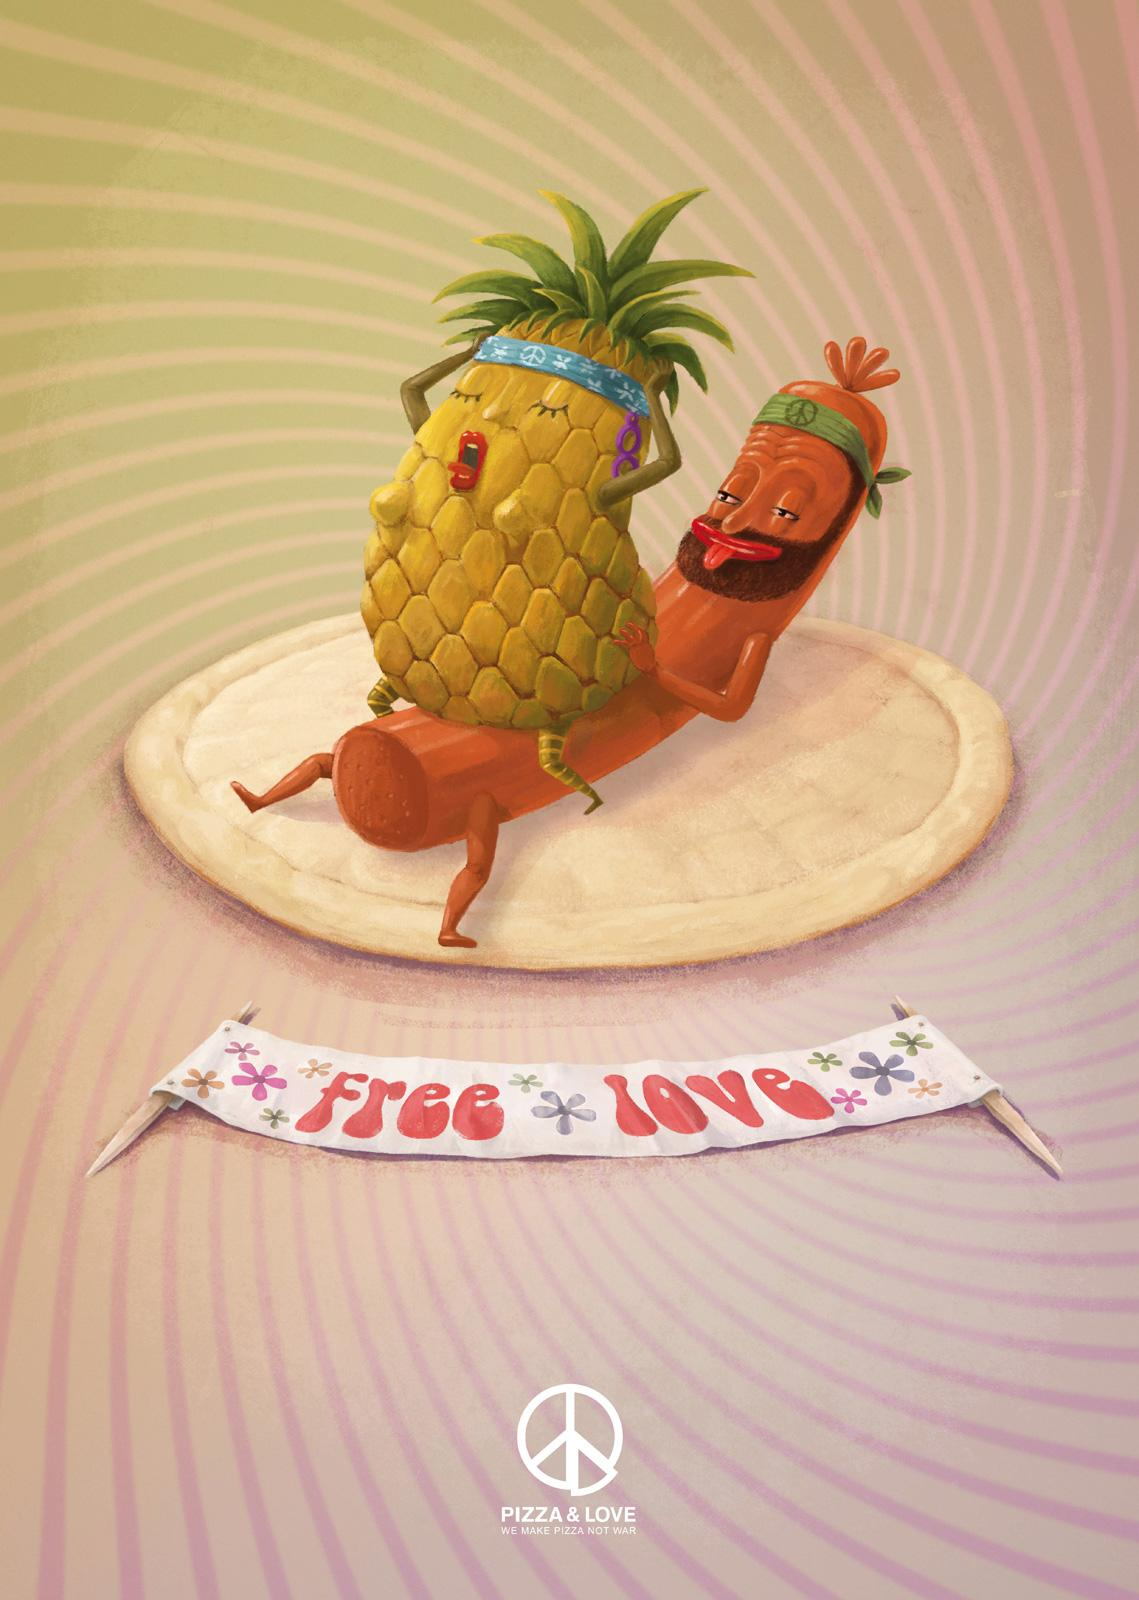 Pizza&Love Print Ad -  Pineapple